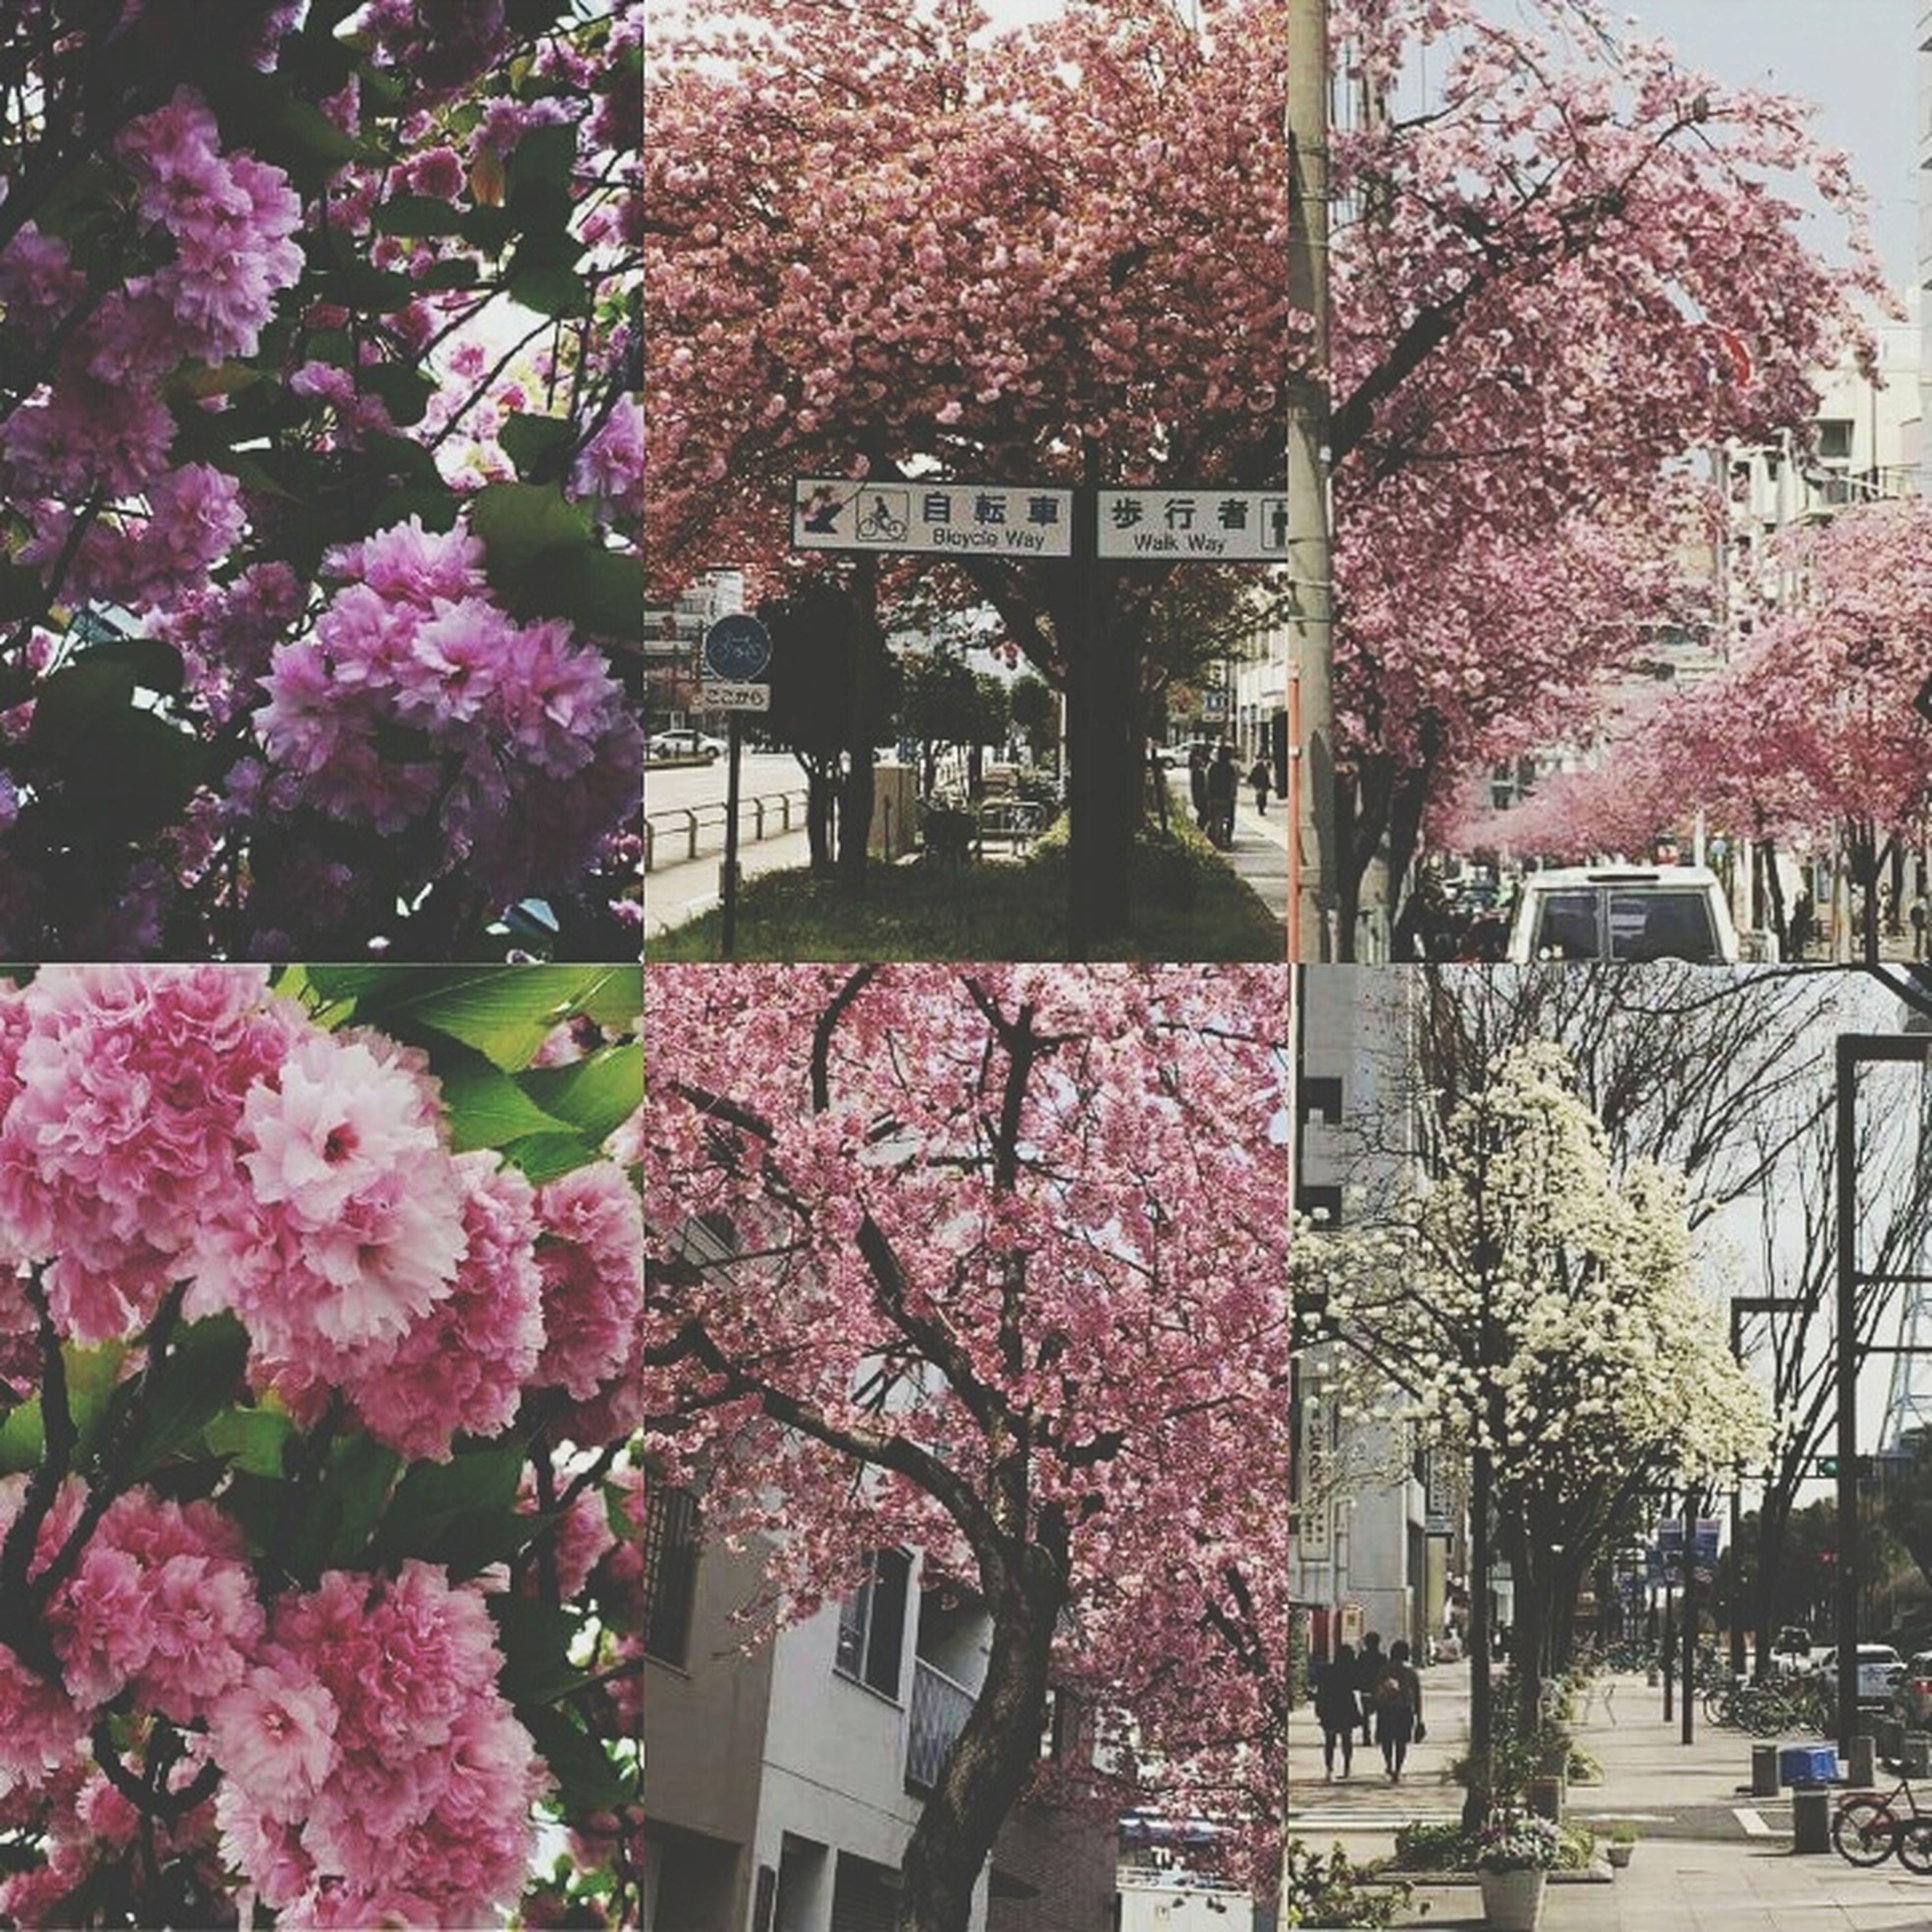 flower, tree, building exterior, architecture, built structure, growth, branch, pink color, freshness, city, blossom, nature, fragility, cherry blossom, cherry tree, beauty in nature, day, outdoors, incidental people, city life